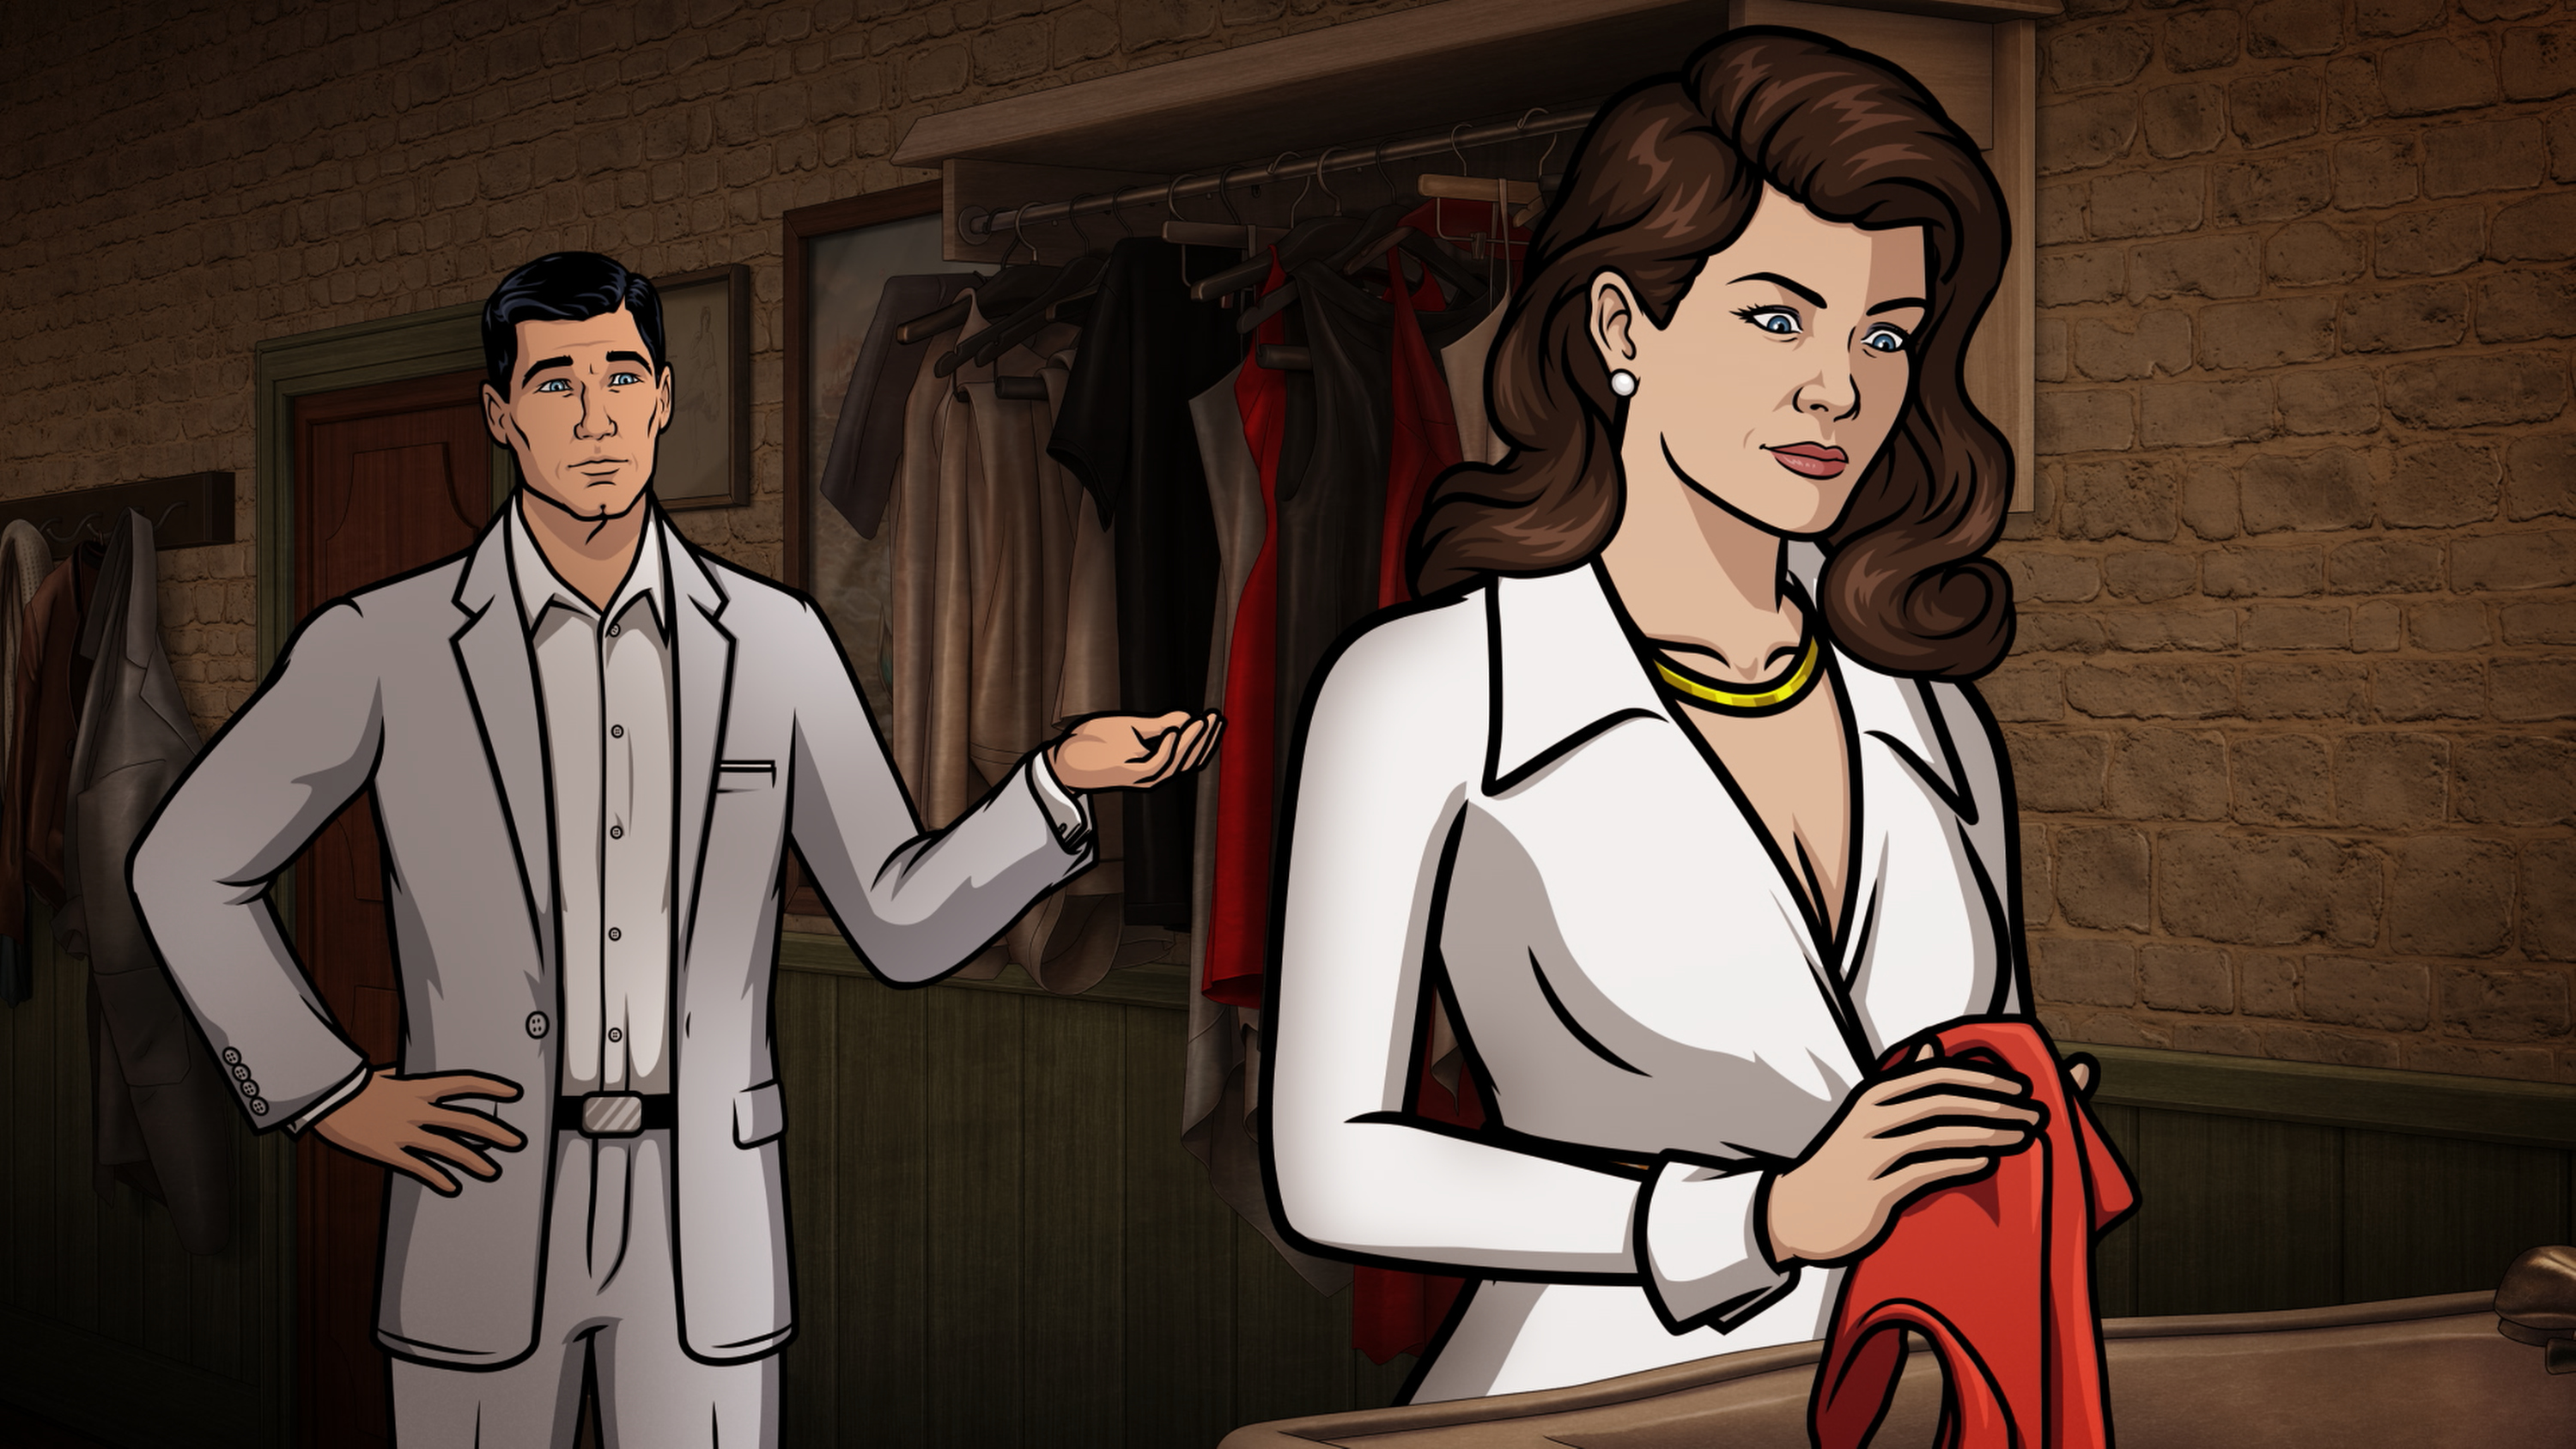 Archer fx producers want jon hamm for a live action movie - Archer episodes youtube ...